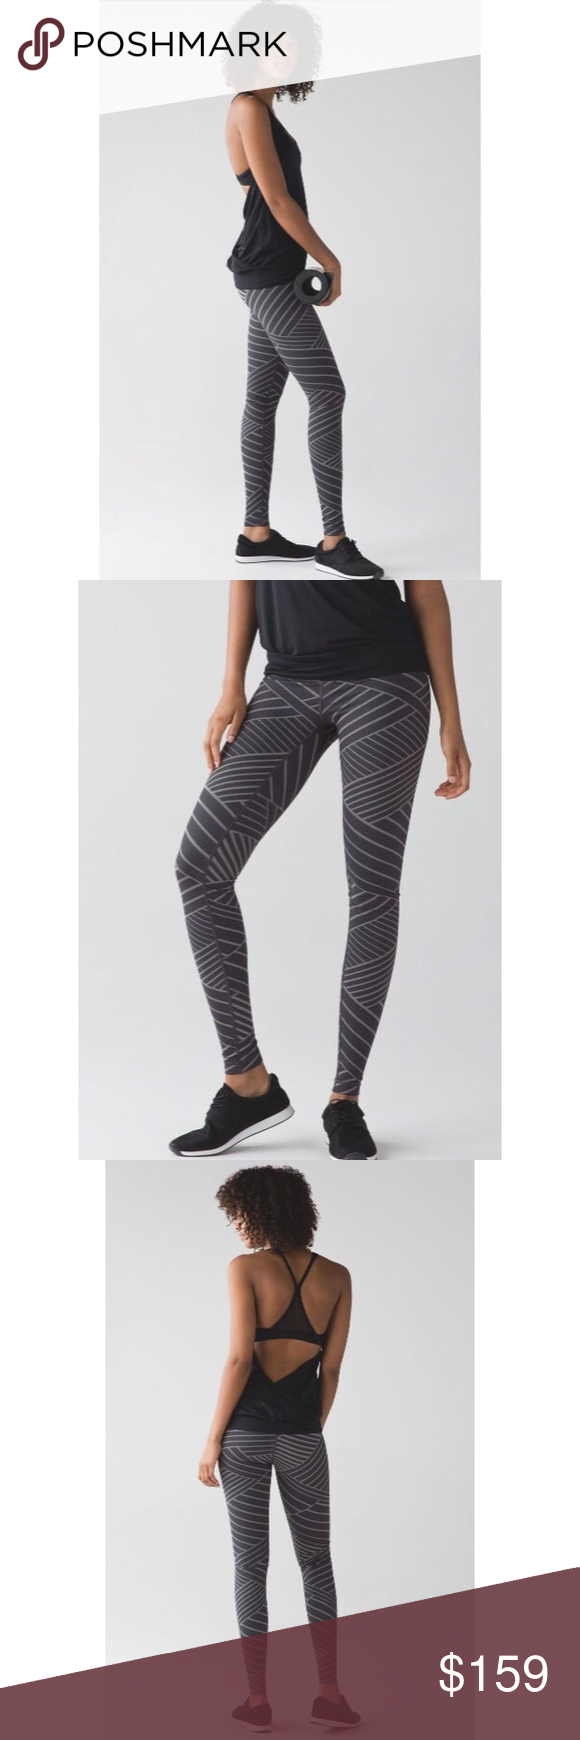 fd515b5e561a4d Lululemon Wunder Under Pant-Metallic Lumatrix, 2 Lululemon Wunder Under  Pant III-Metallic